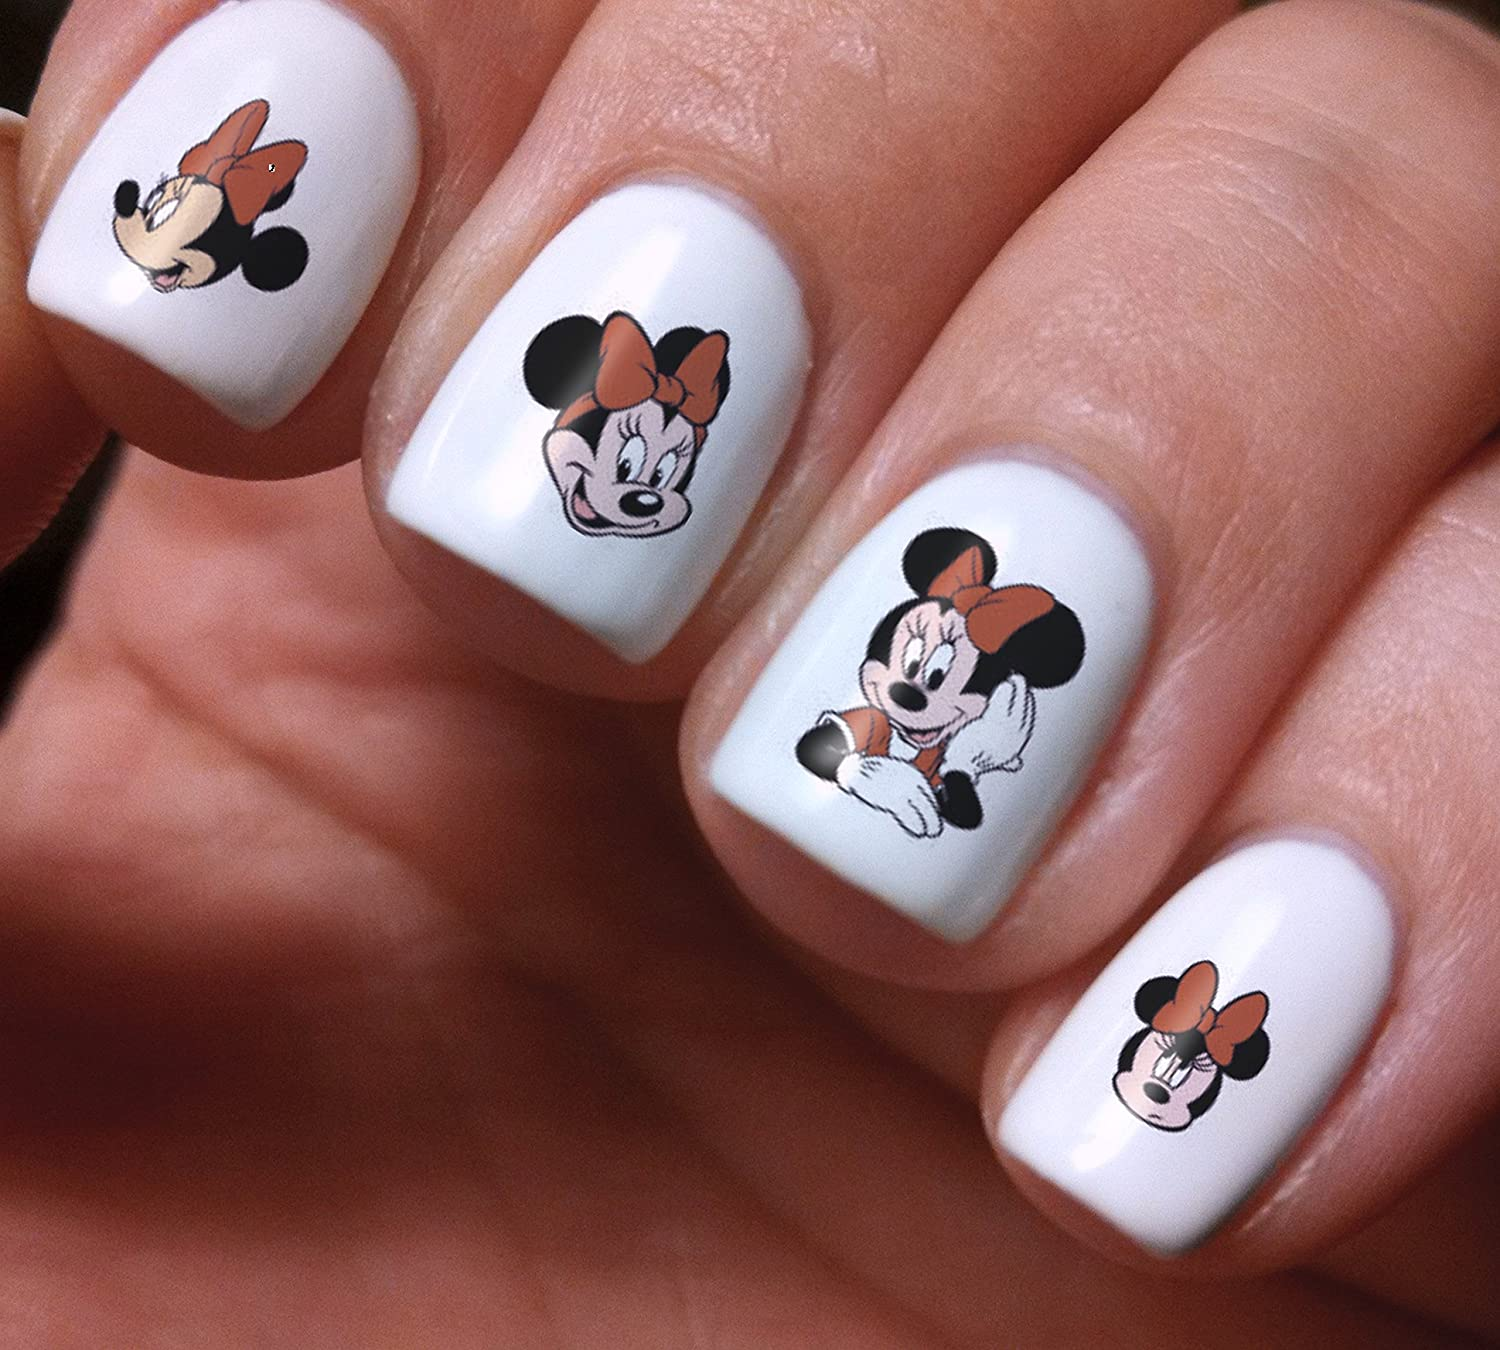 Nail Art Decals Set 3D DIY Mickey and Minnie Mouse Disney Cartoon -  Original Beauty Fashion Style High Quality Design Decoration Water  Transfer- The best ... - Amazon.com: Nail Art Decals Set 3D DIY Mickey And Minnie Mouse